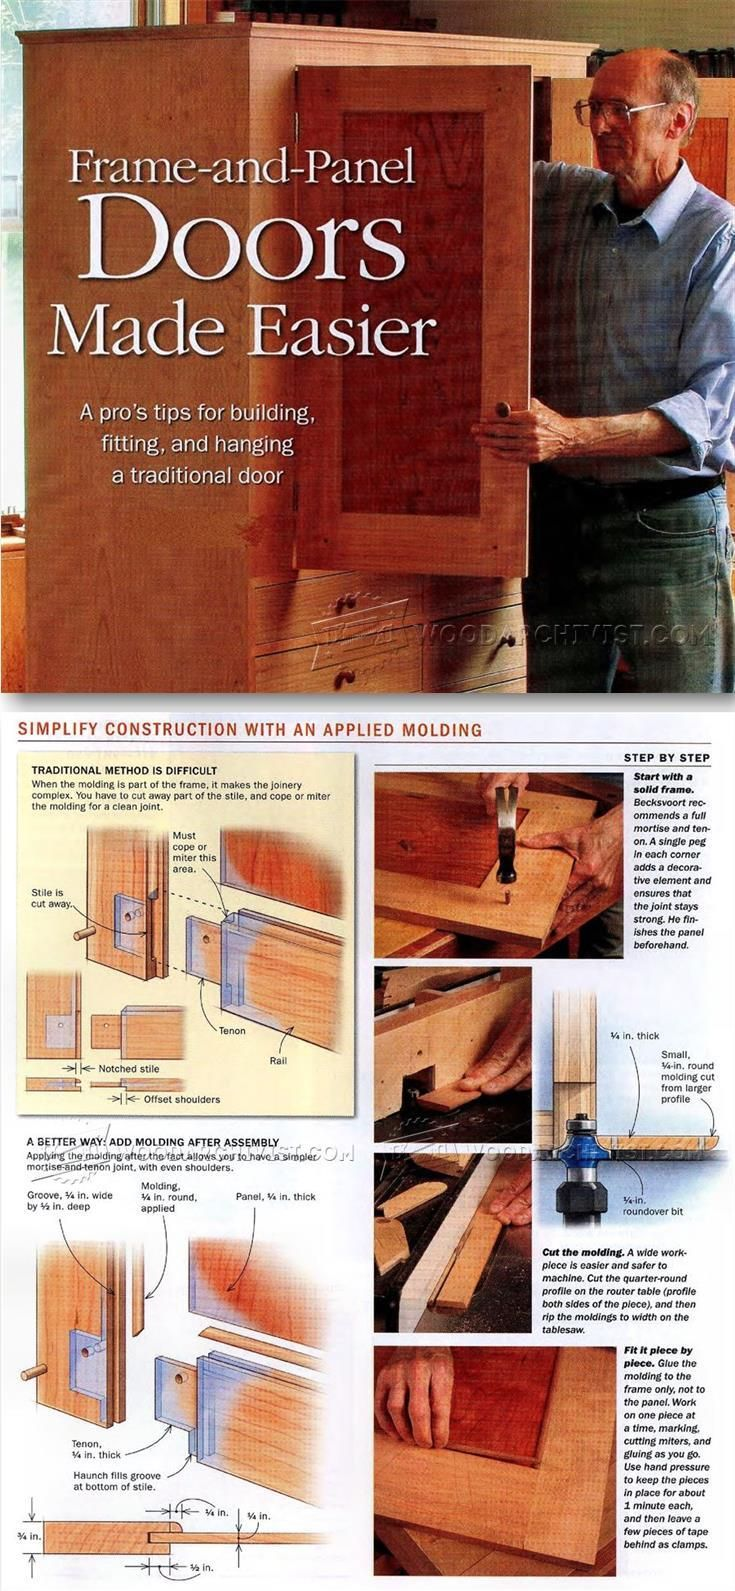 Tools Needed To Build Cabinets Face Frame Cabinet Building Tips The Family Handyman Building